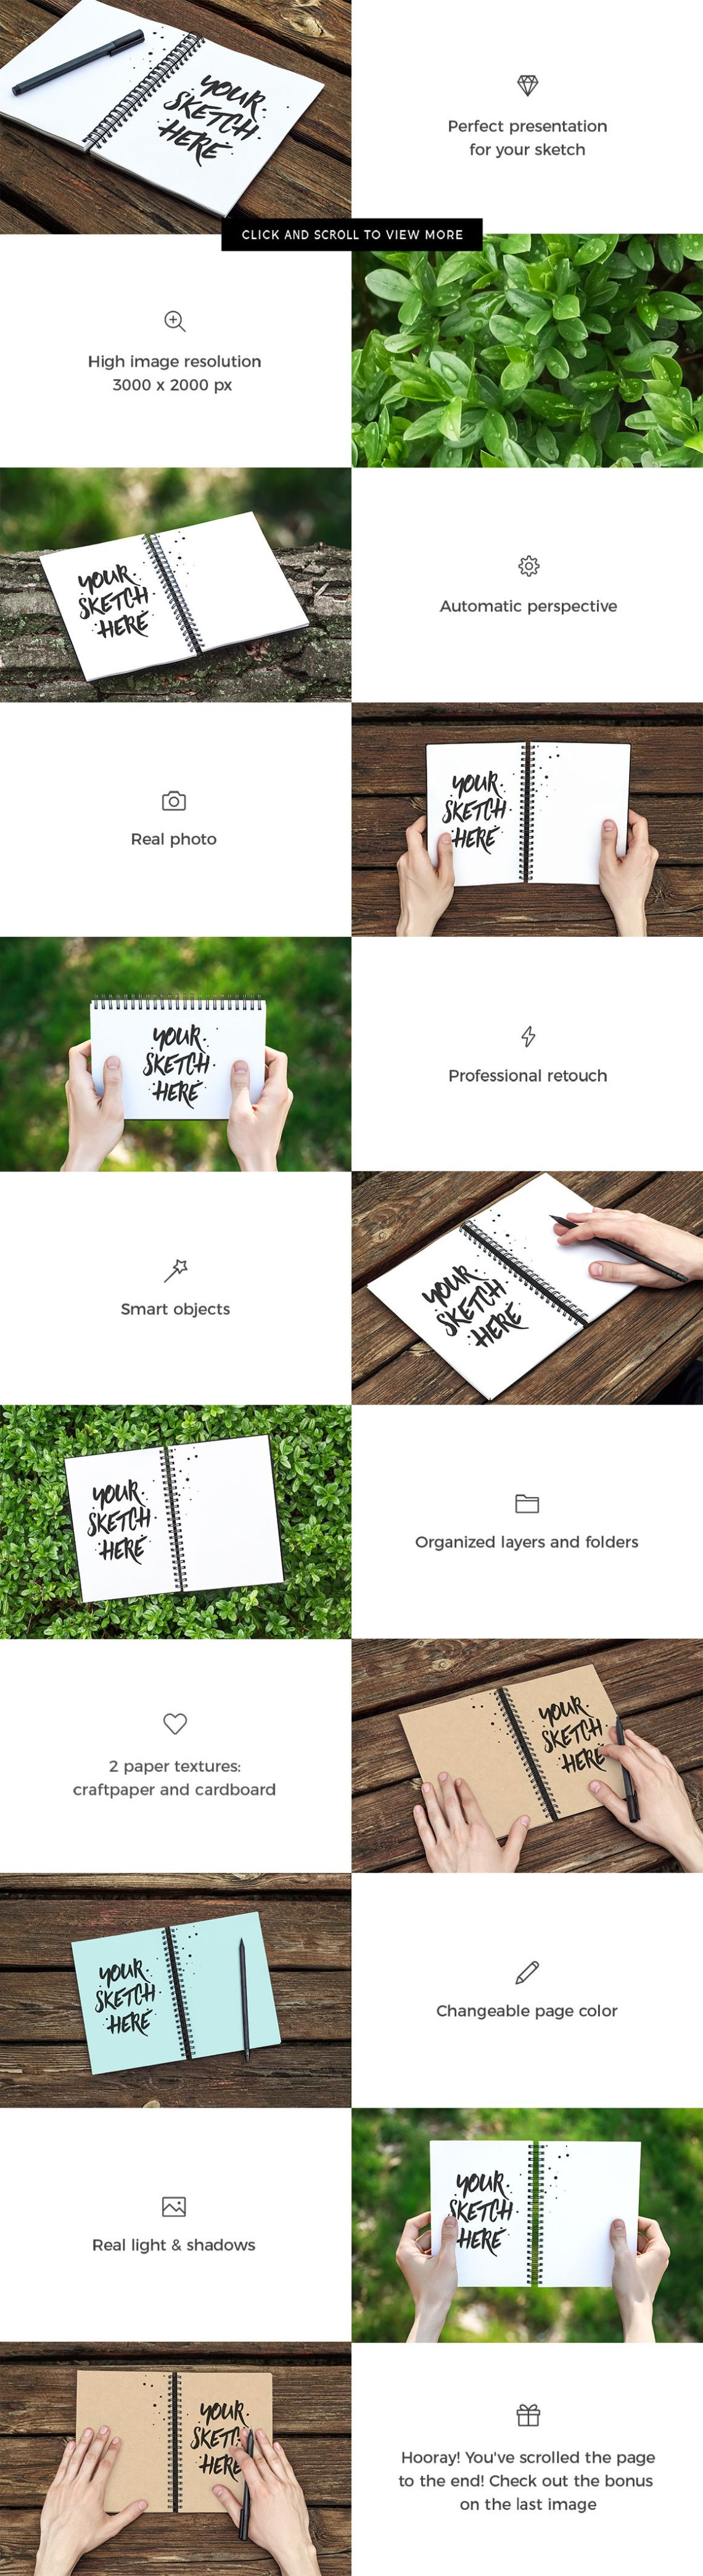 Download Behance Mockup Psd Free Yellowimages